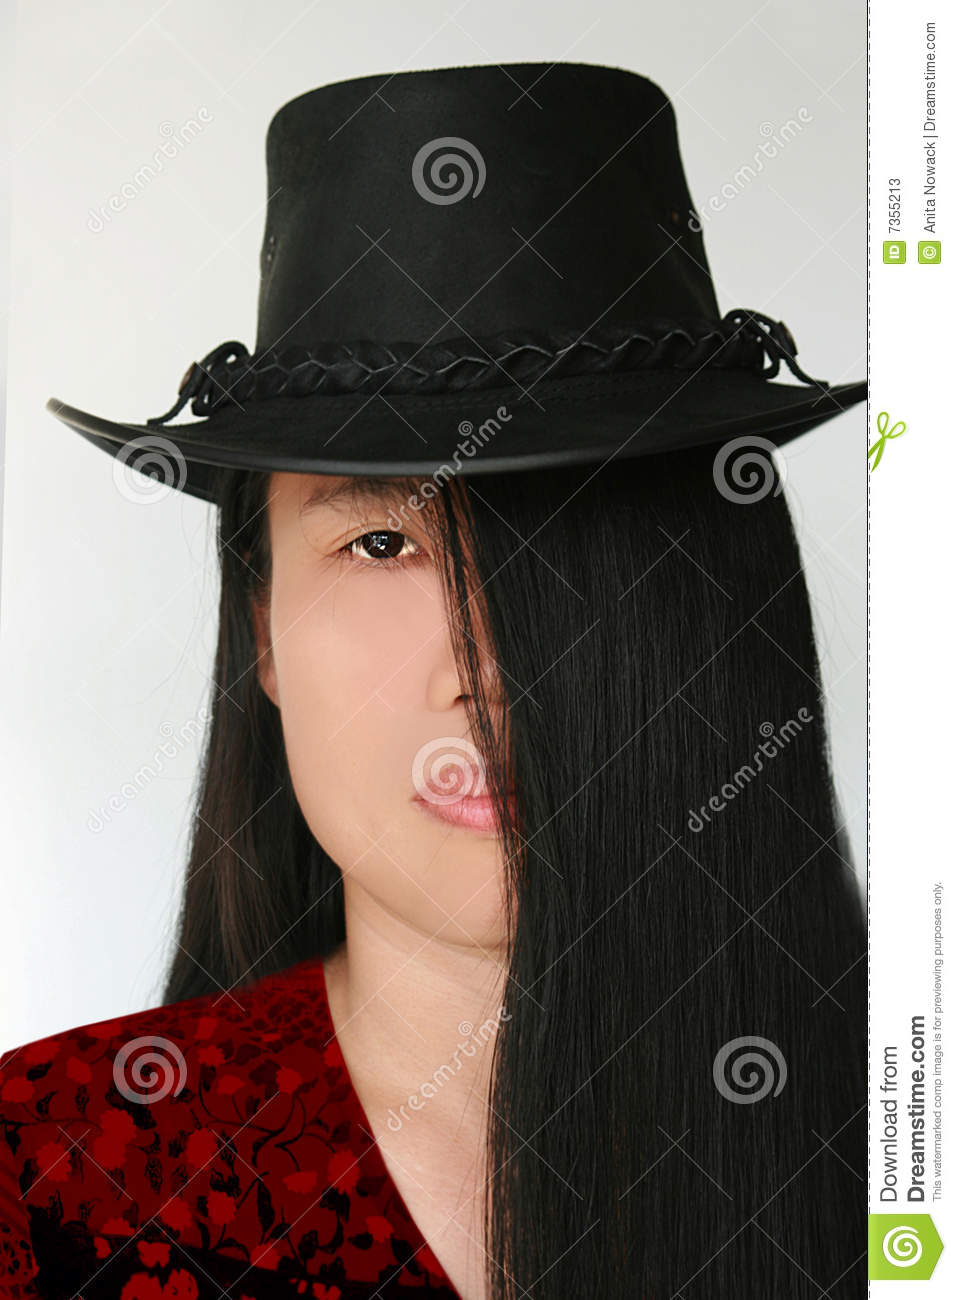 Long black hair beauty with hat